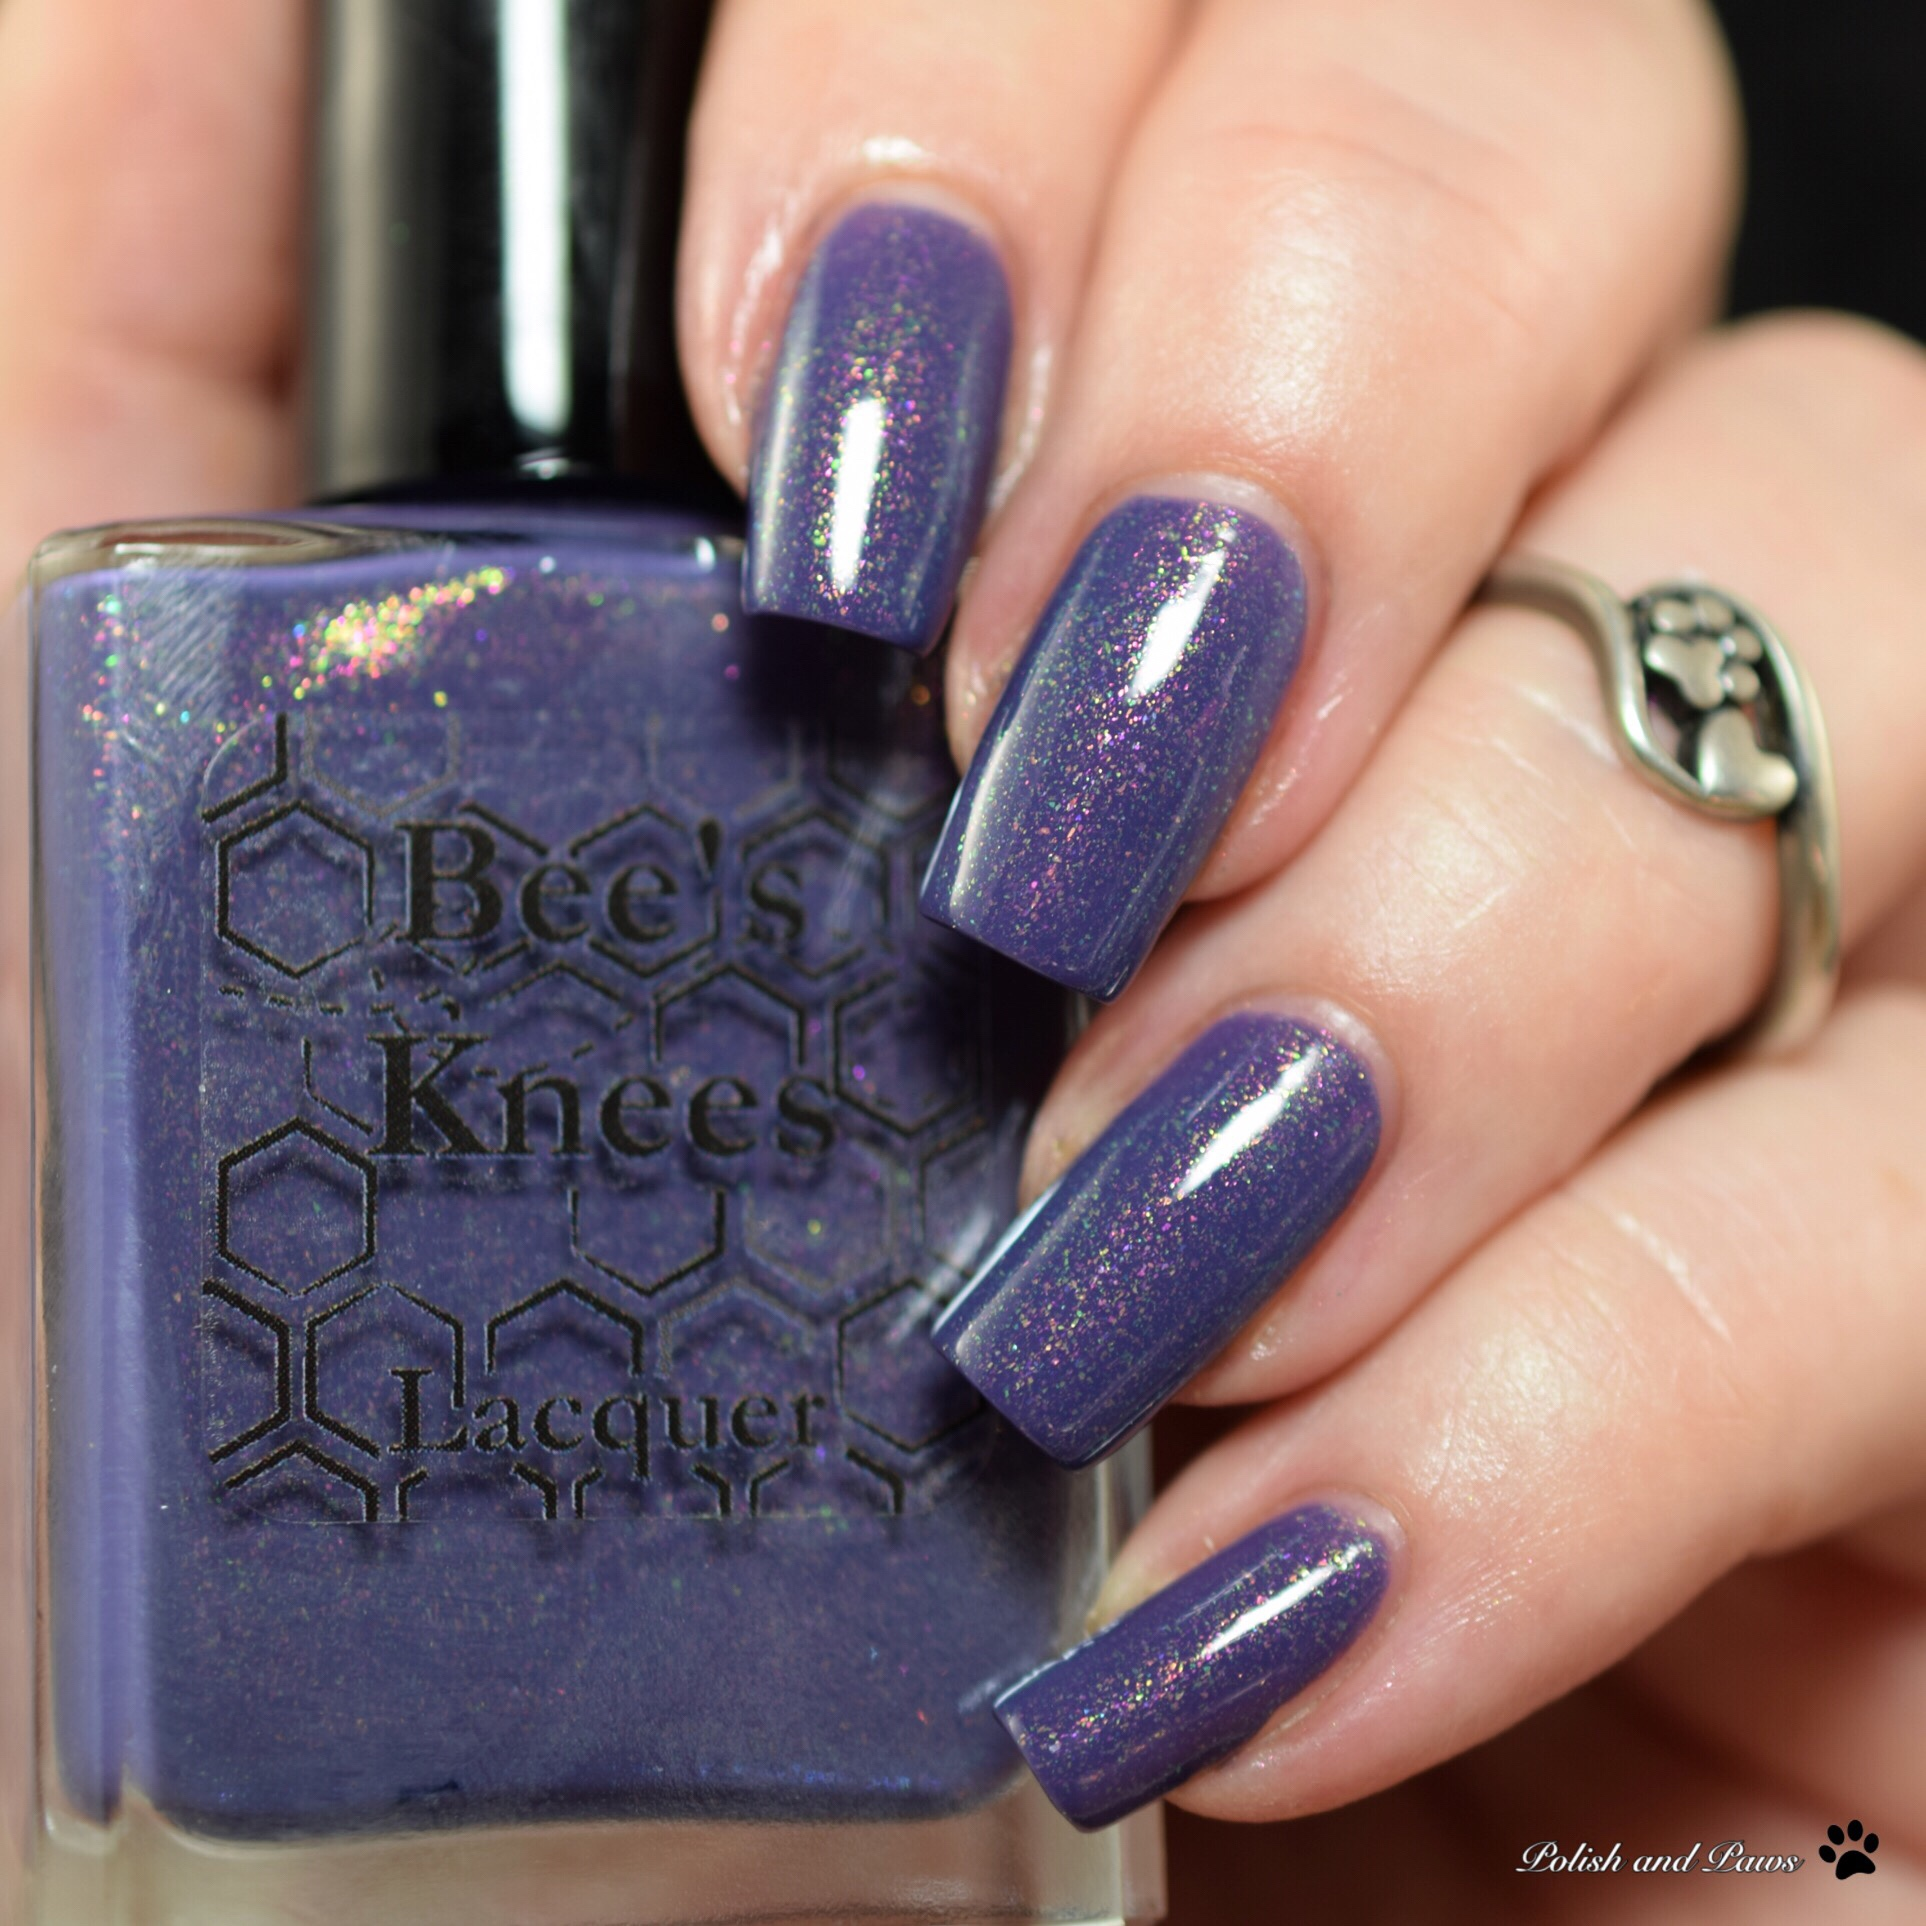 Bee's Knees Lacquer Stormy